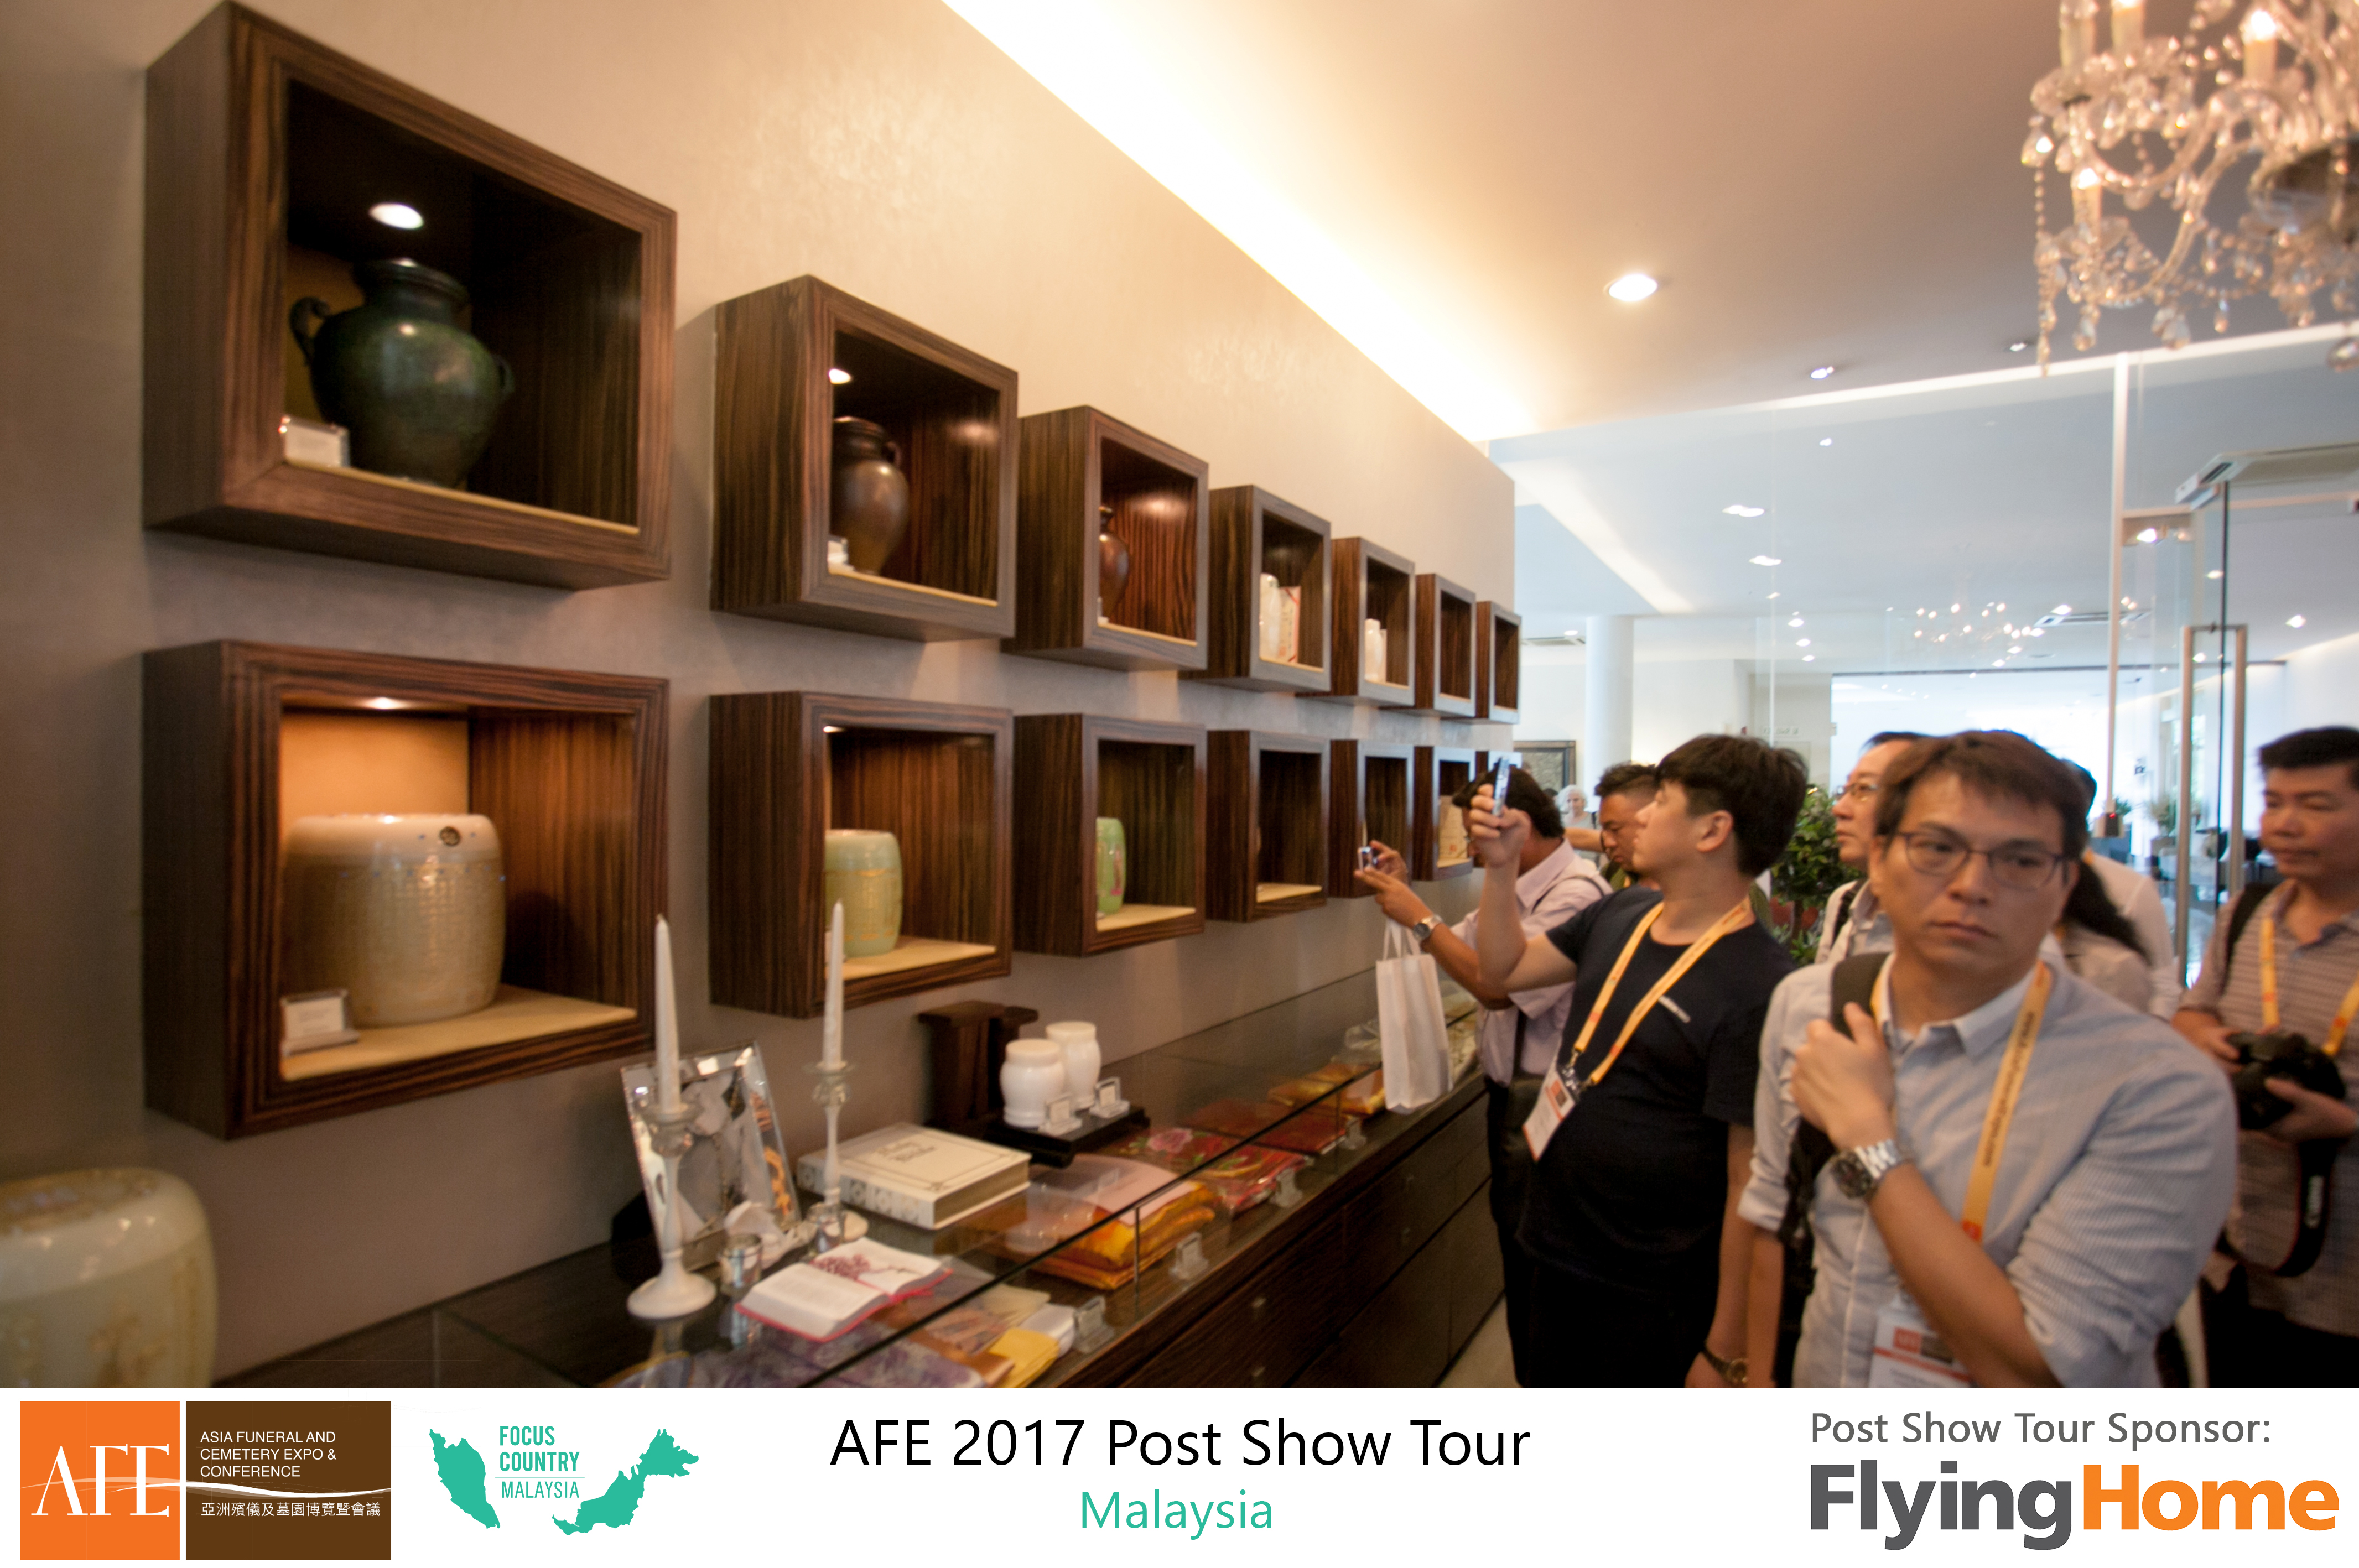 AFE Post Show Tour 2017 Day 3 -52